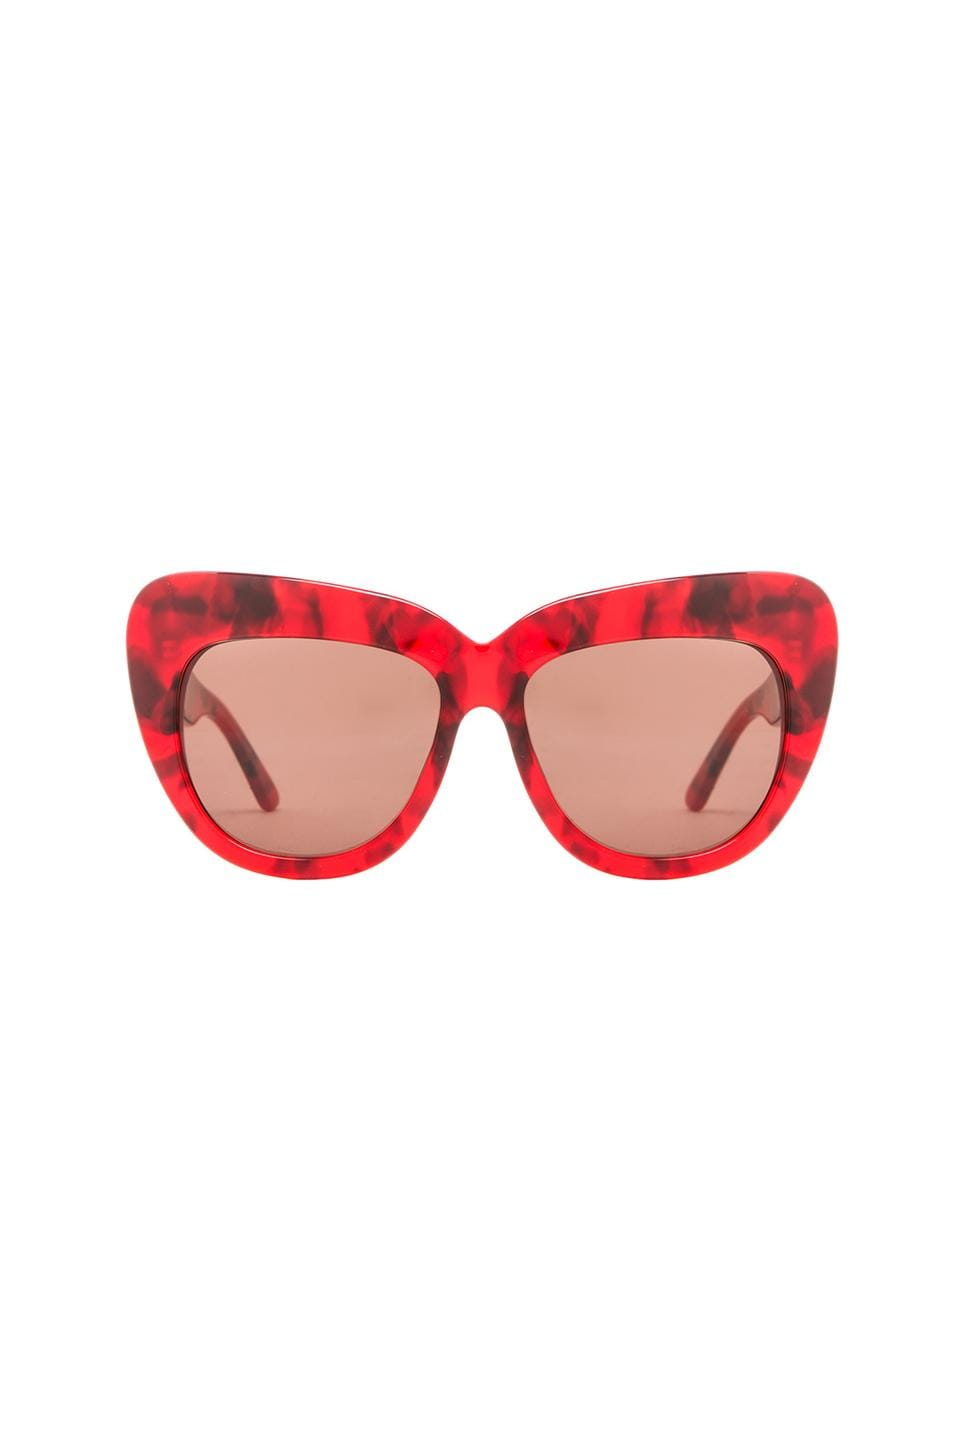 House of Harlow Chelsea Sunglasses in Blood